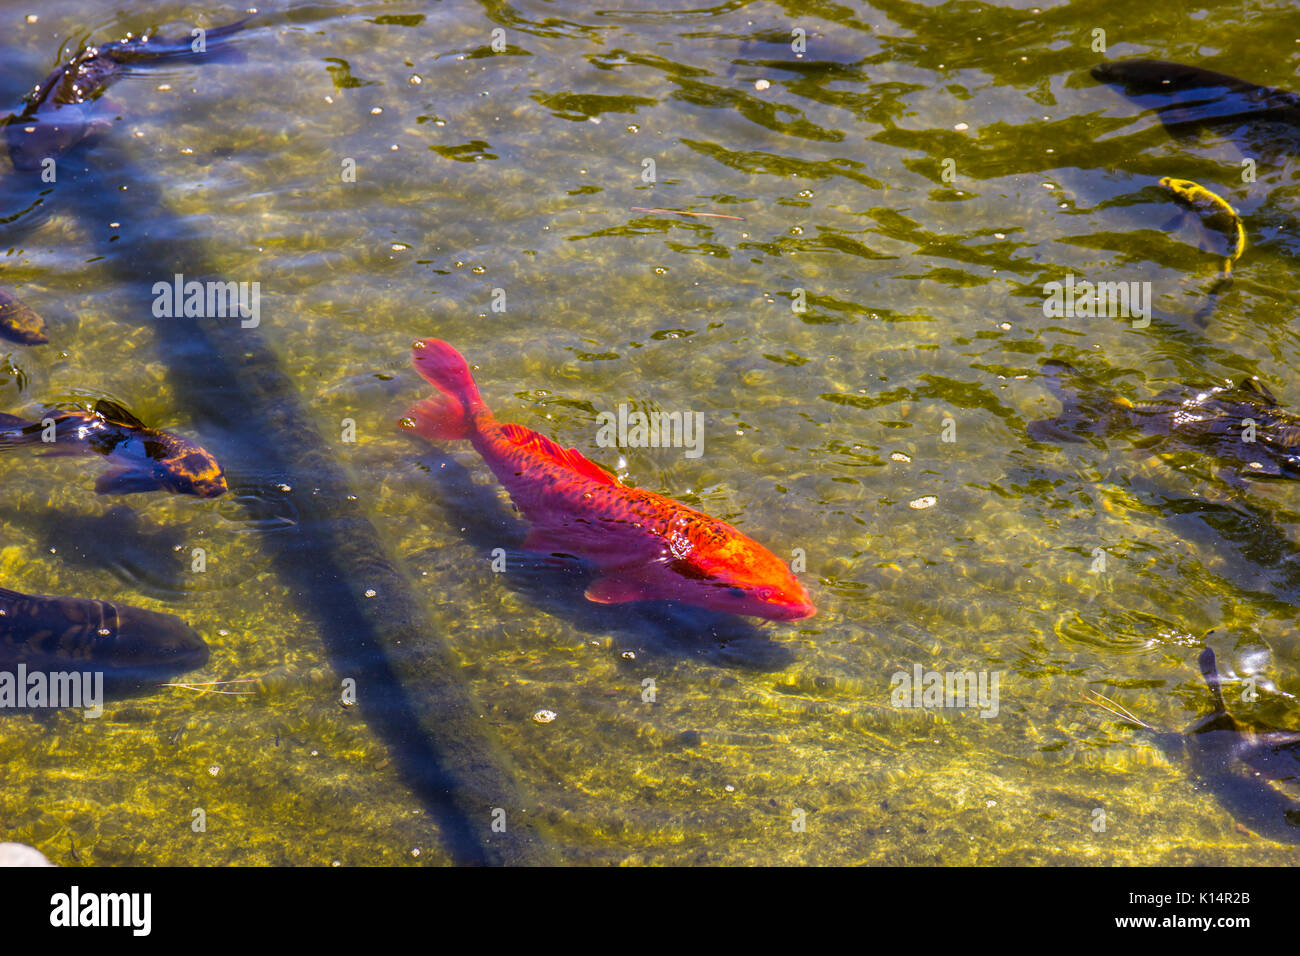 Fish types stock photos fish types stock images alamy for Decorative pond fish